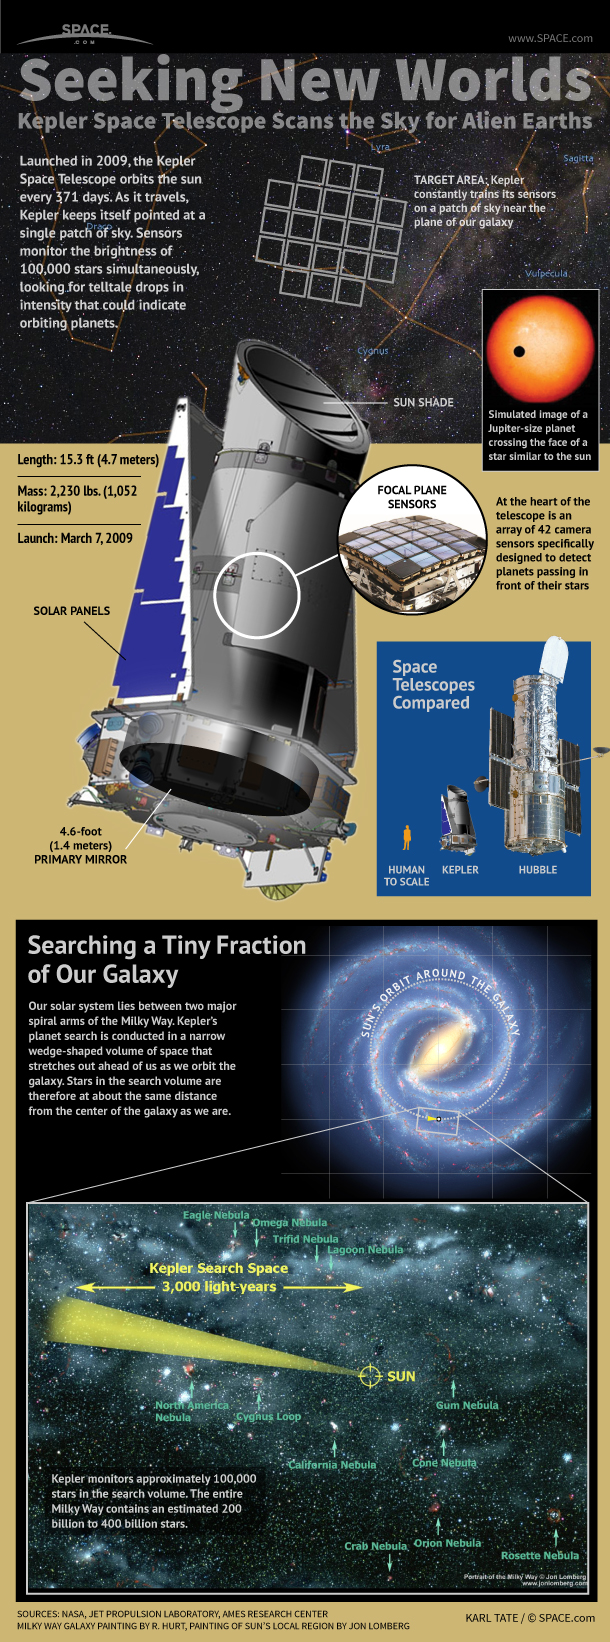 kepler-space-telescope-120830a